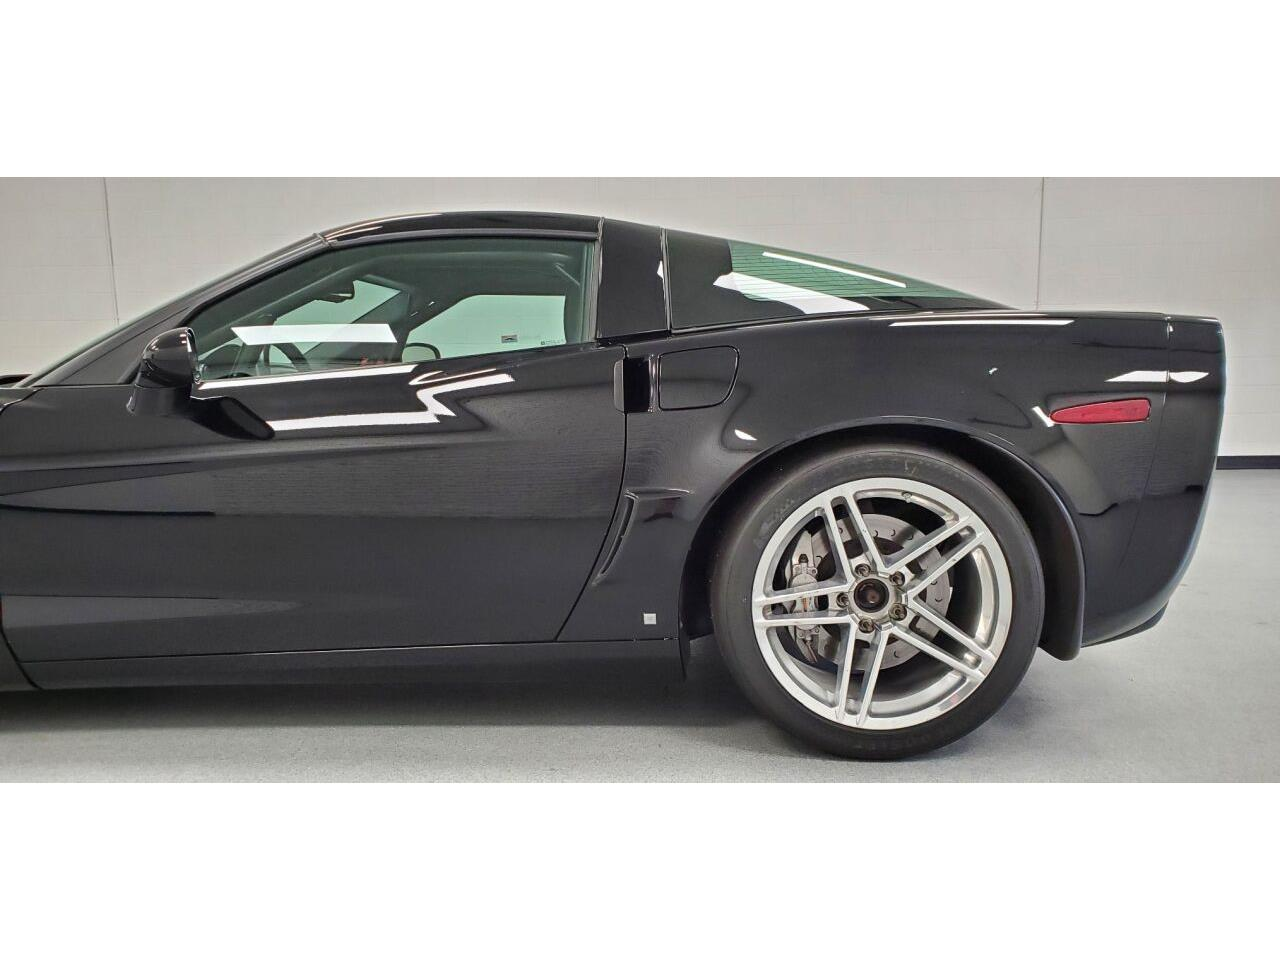 2006 Chevrolet Corvette (CC-1389057) for sale in Watertown, Wisconsin